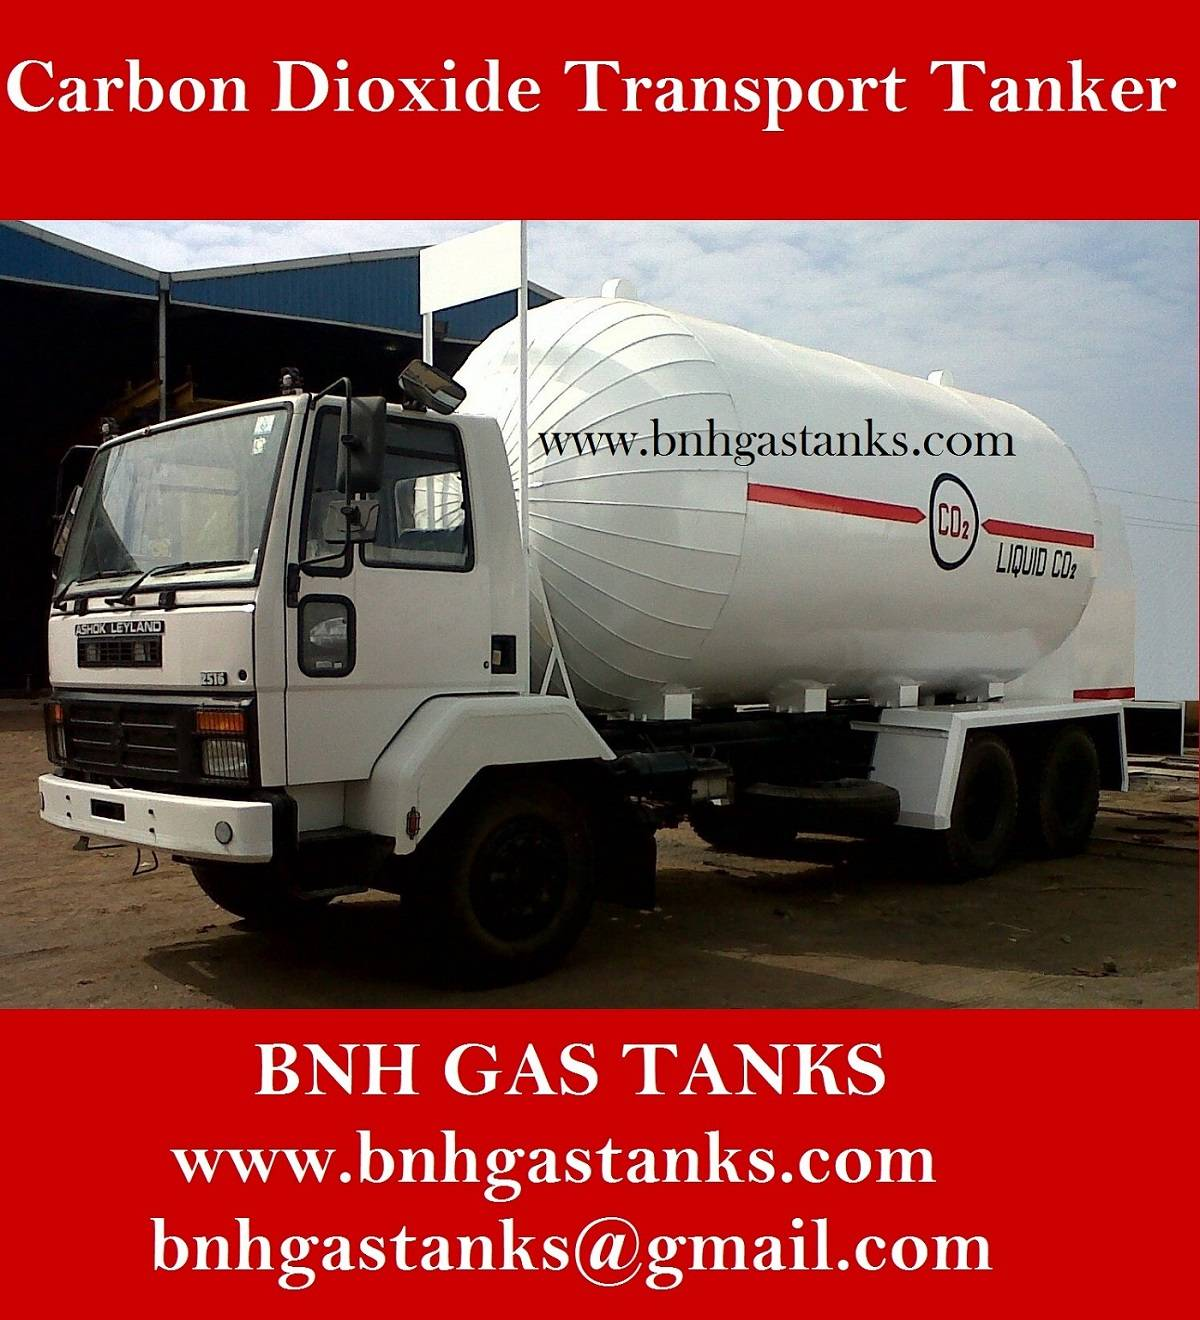 Carbon Dioxide Transport Tanker